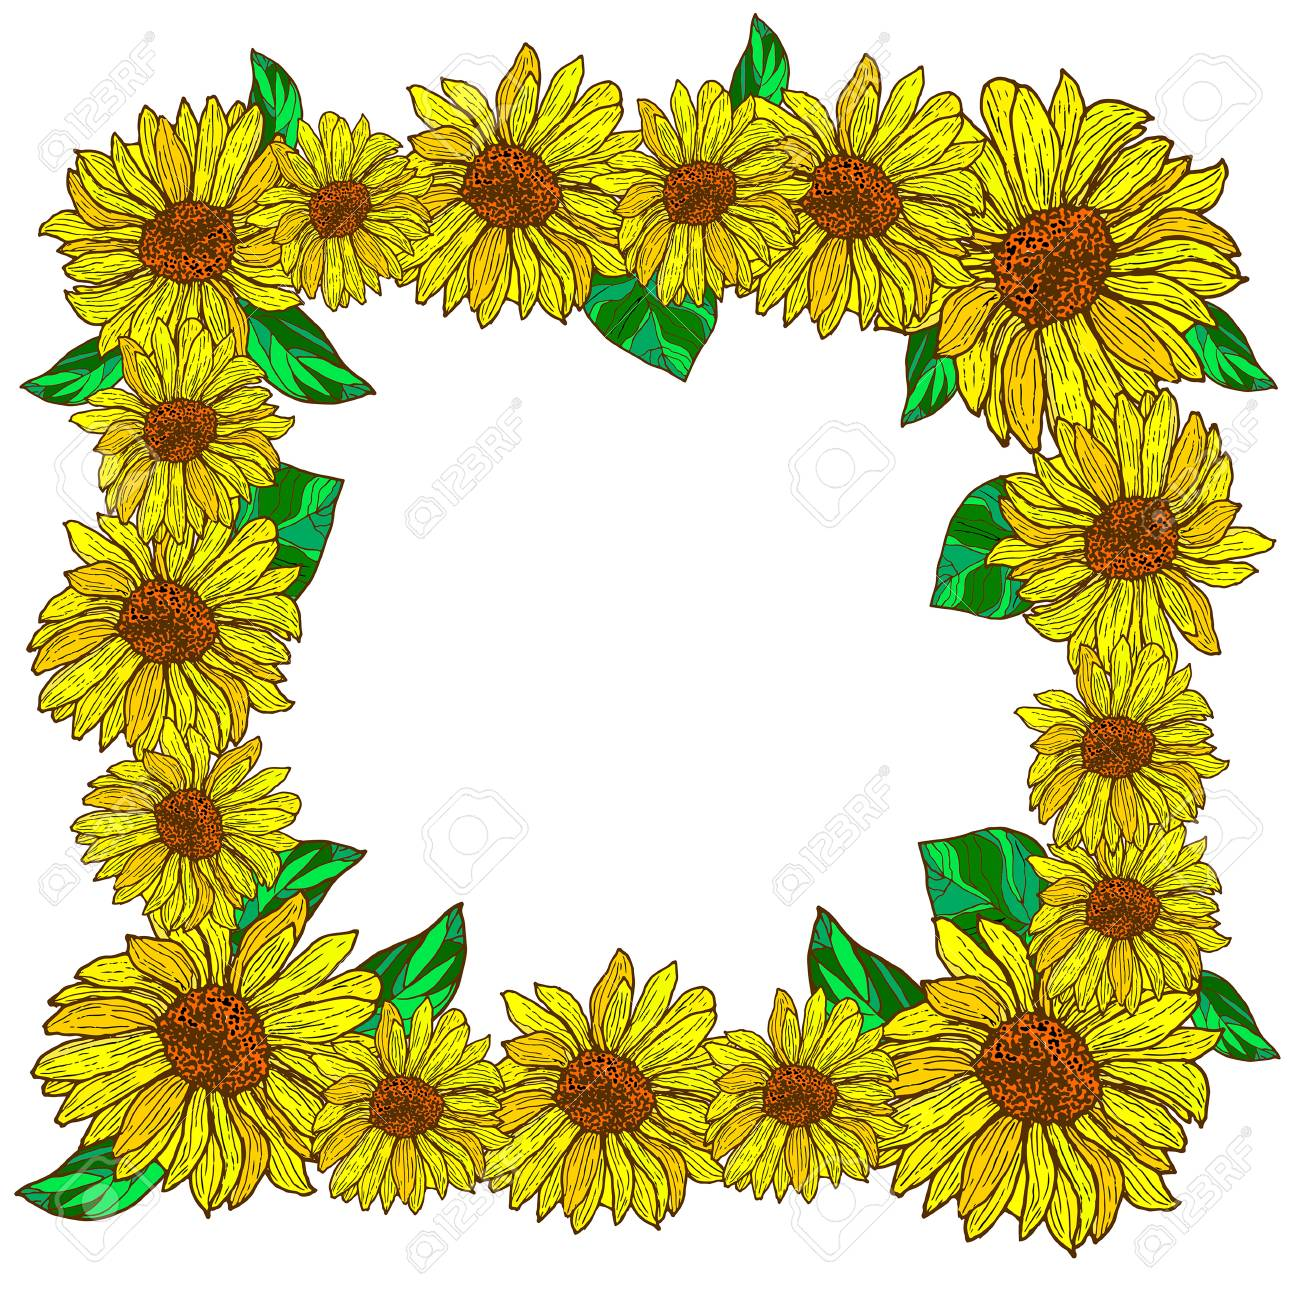 Flower Decorative Frame With Sunflowers Cartoon Style Vector Hand Drawn Illustration Blossoming Sunflower